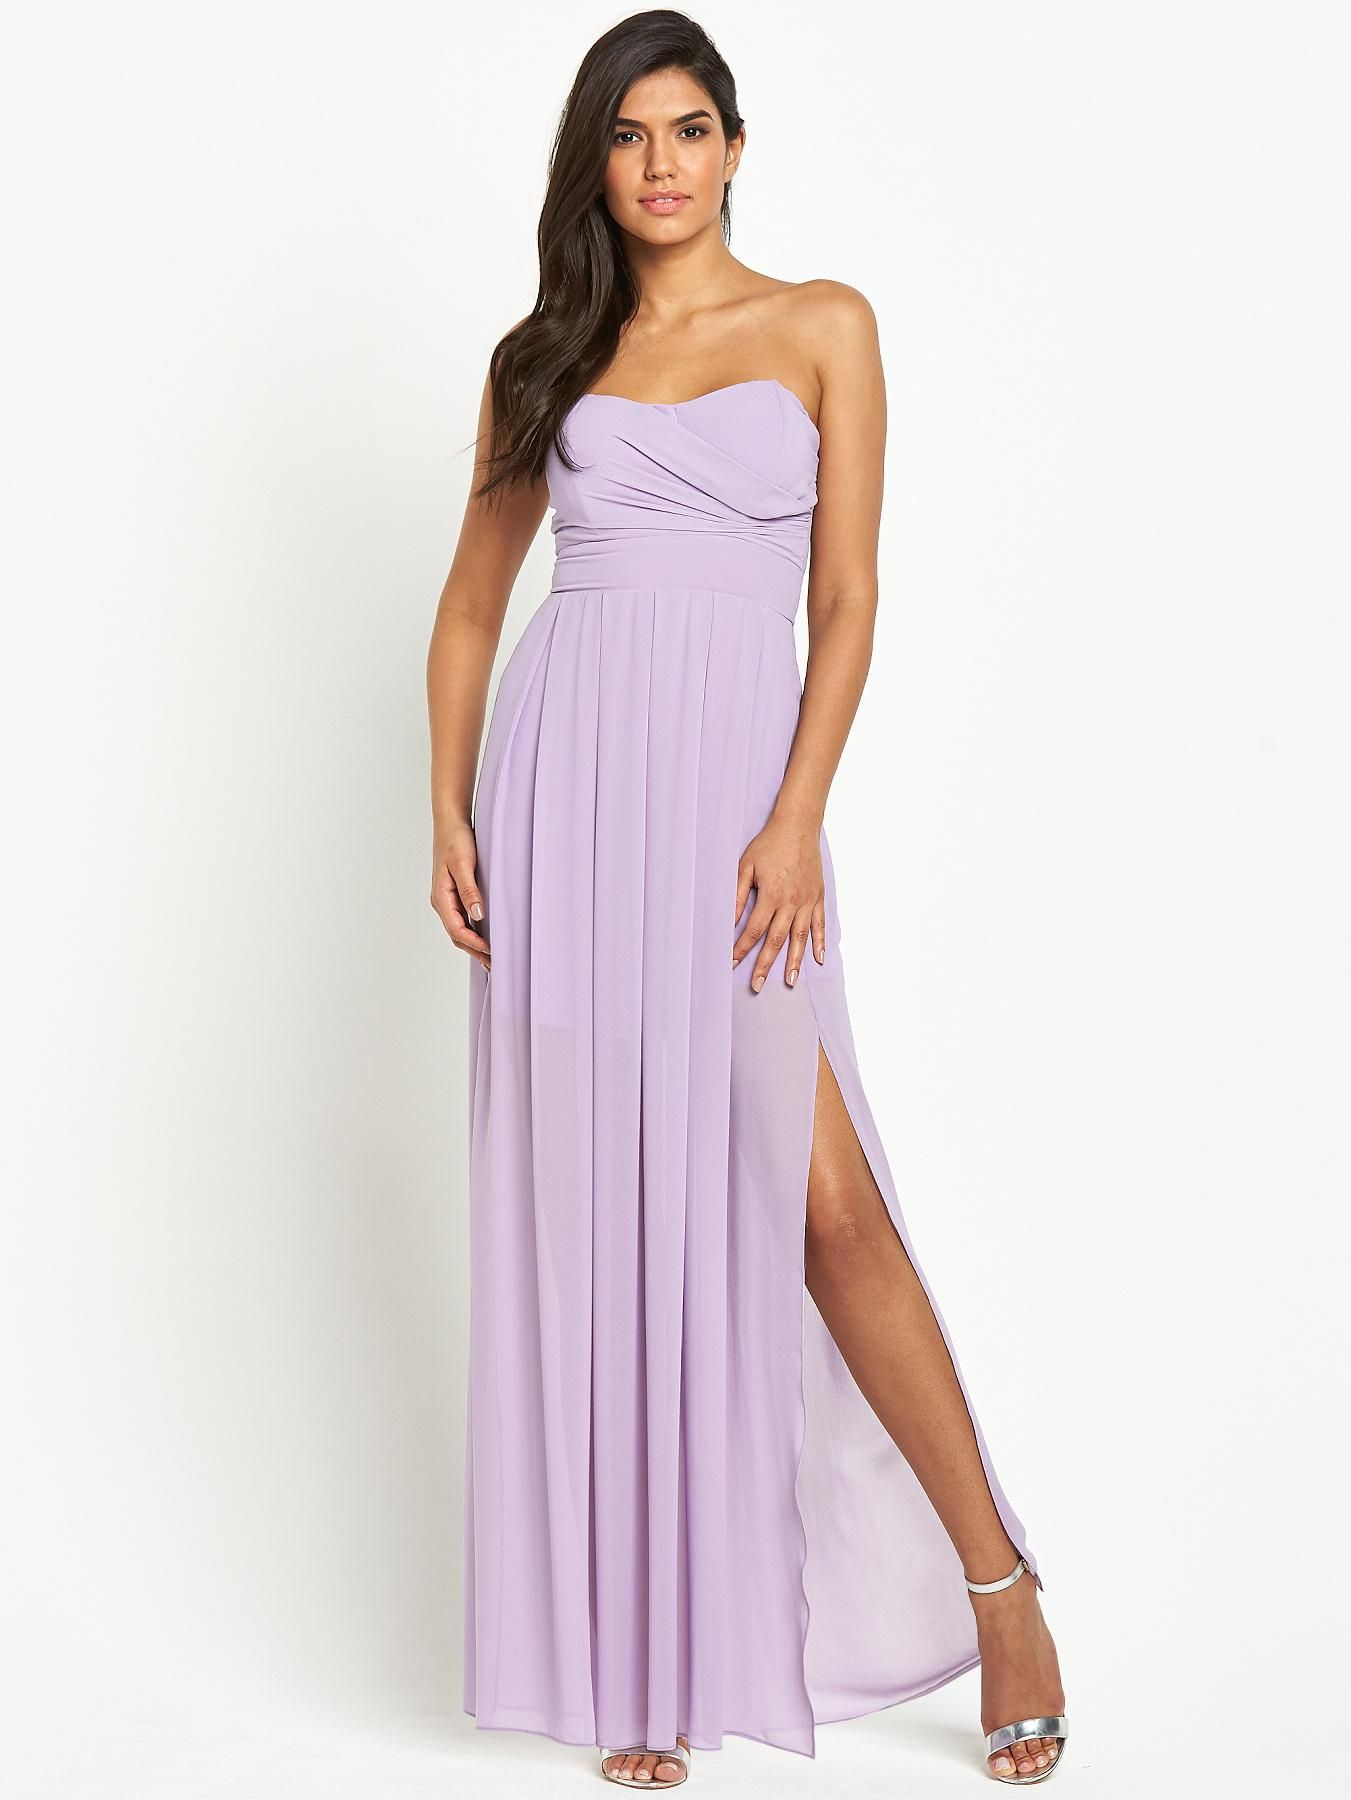 Littlewoods dresses for weddings  Pin by hung le on Larissa Schmidt Fashions  Pinterest  Gowns and